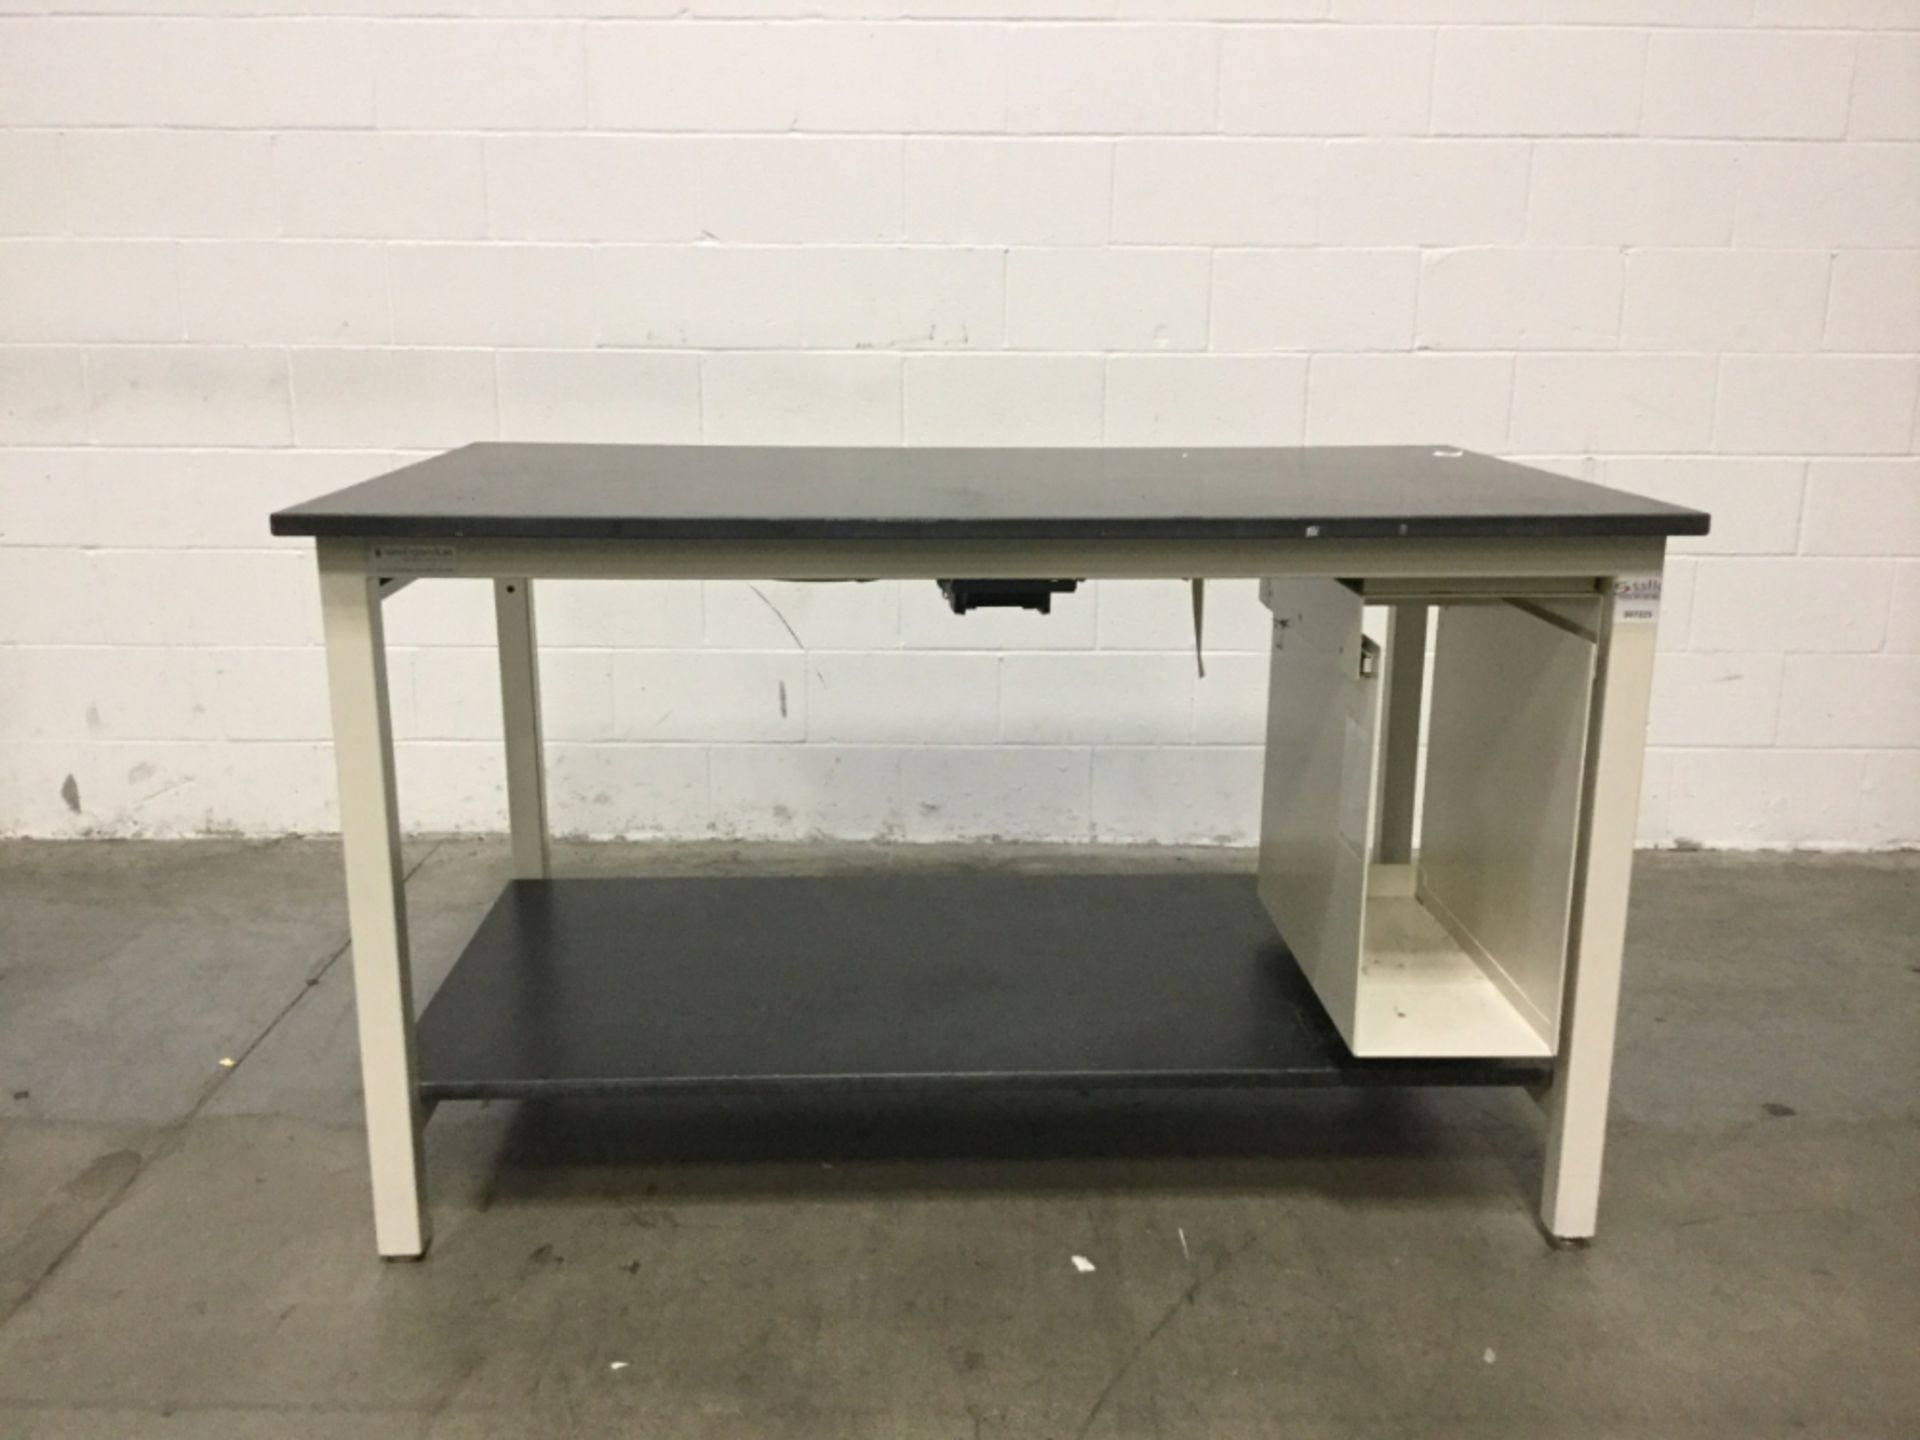 Lot 2 - 5' New England Lab Stationary Table